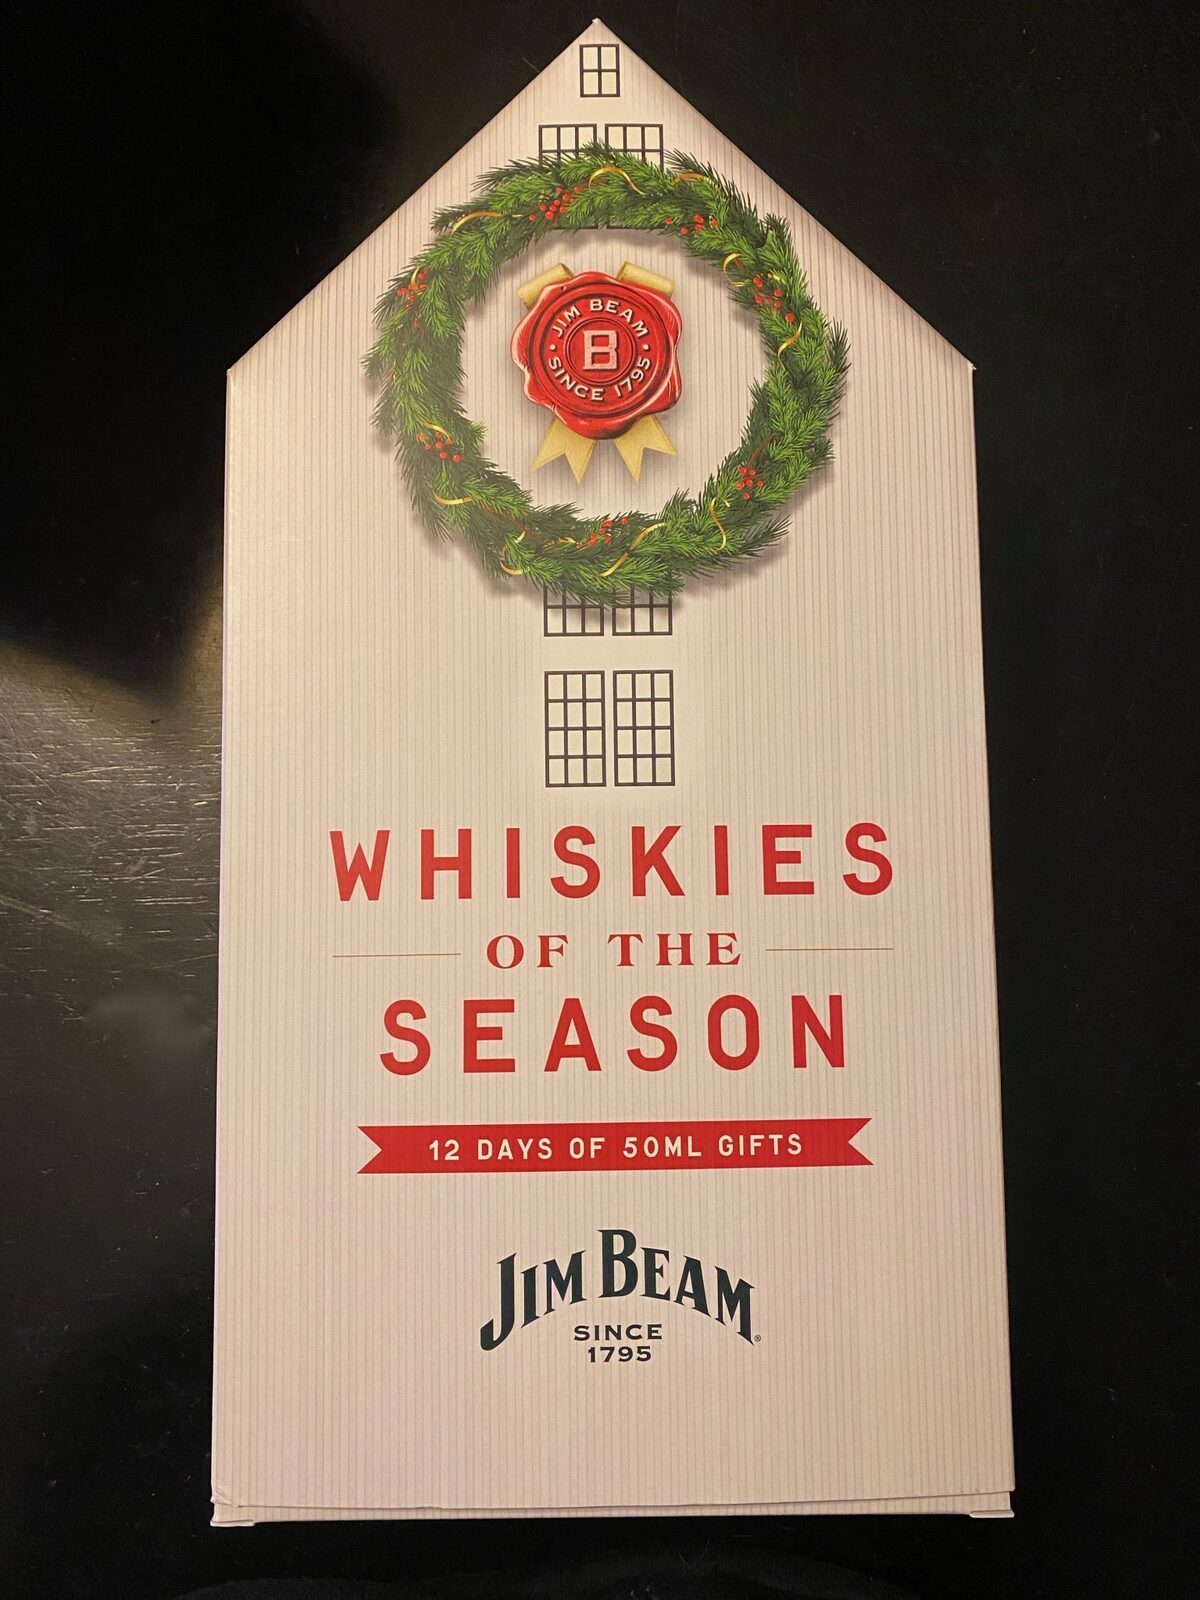 Jim Beam Whiskies of the Season Advent Calendar – Mini Review